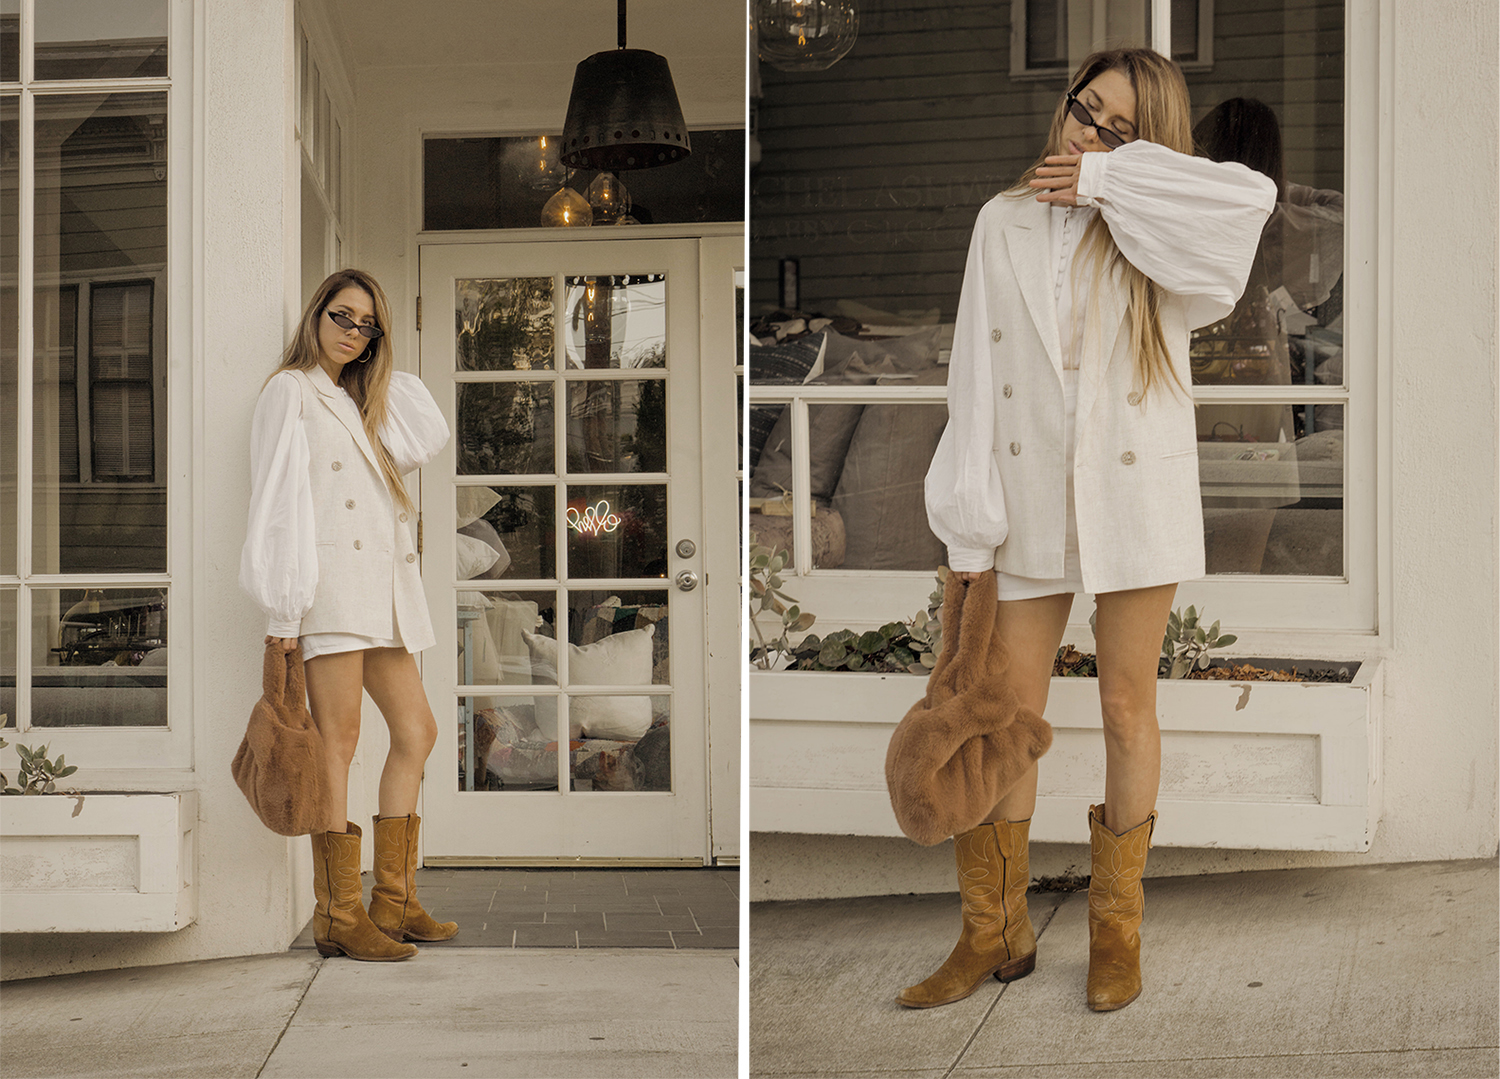 total_all_white_outfit_look_street_style_western_boots_isabel_marant_inspired_fur_bag_vest_denim_skirt_summer_2018_trend_lena_juice_the_white_ocean_05